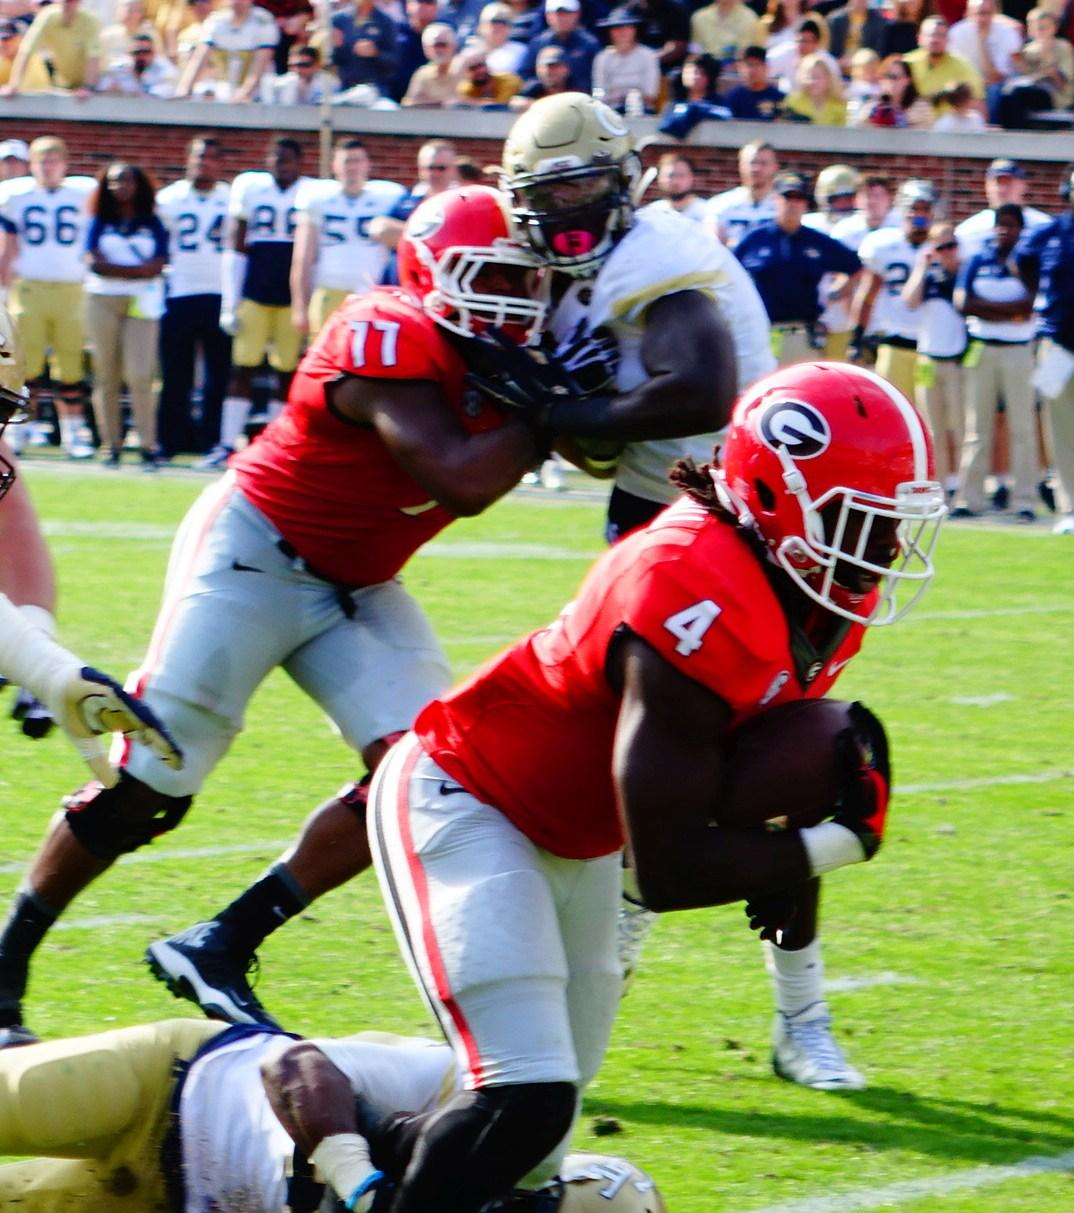 Keith Marshall fights for extra yards - 2nd half UGA vs. GT 28-Nov-2015 (Photo by Greg Poole  - Bulldawg Illustrated)